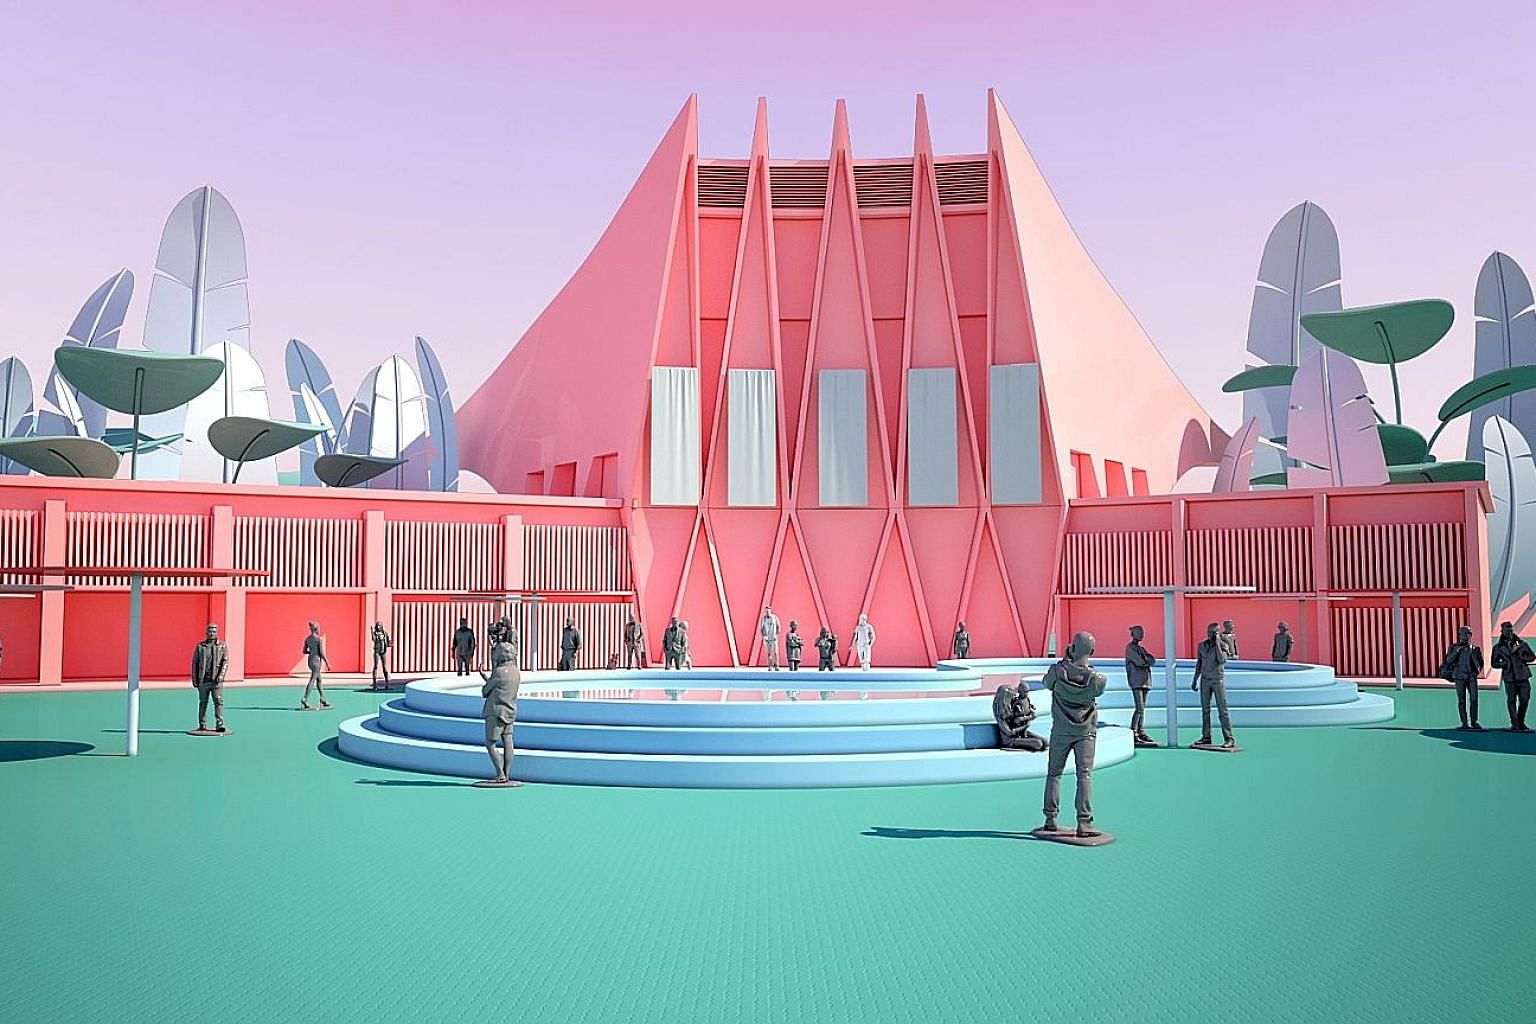 The 360-degree festival village in The Front Row has zones modelled after Singapore's cityscape, such as the Runway Room (above), which is a modern re-creation of the former National Theatre that was demolished in 1986. The virtual fashion festival w